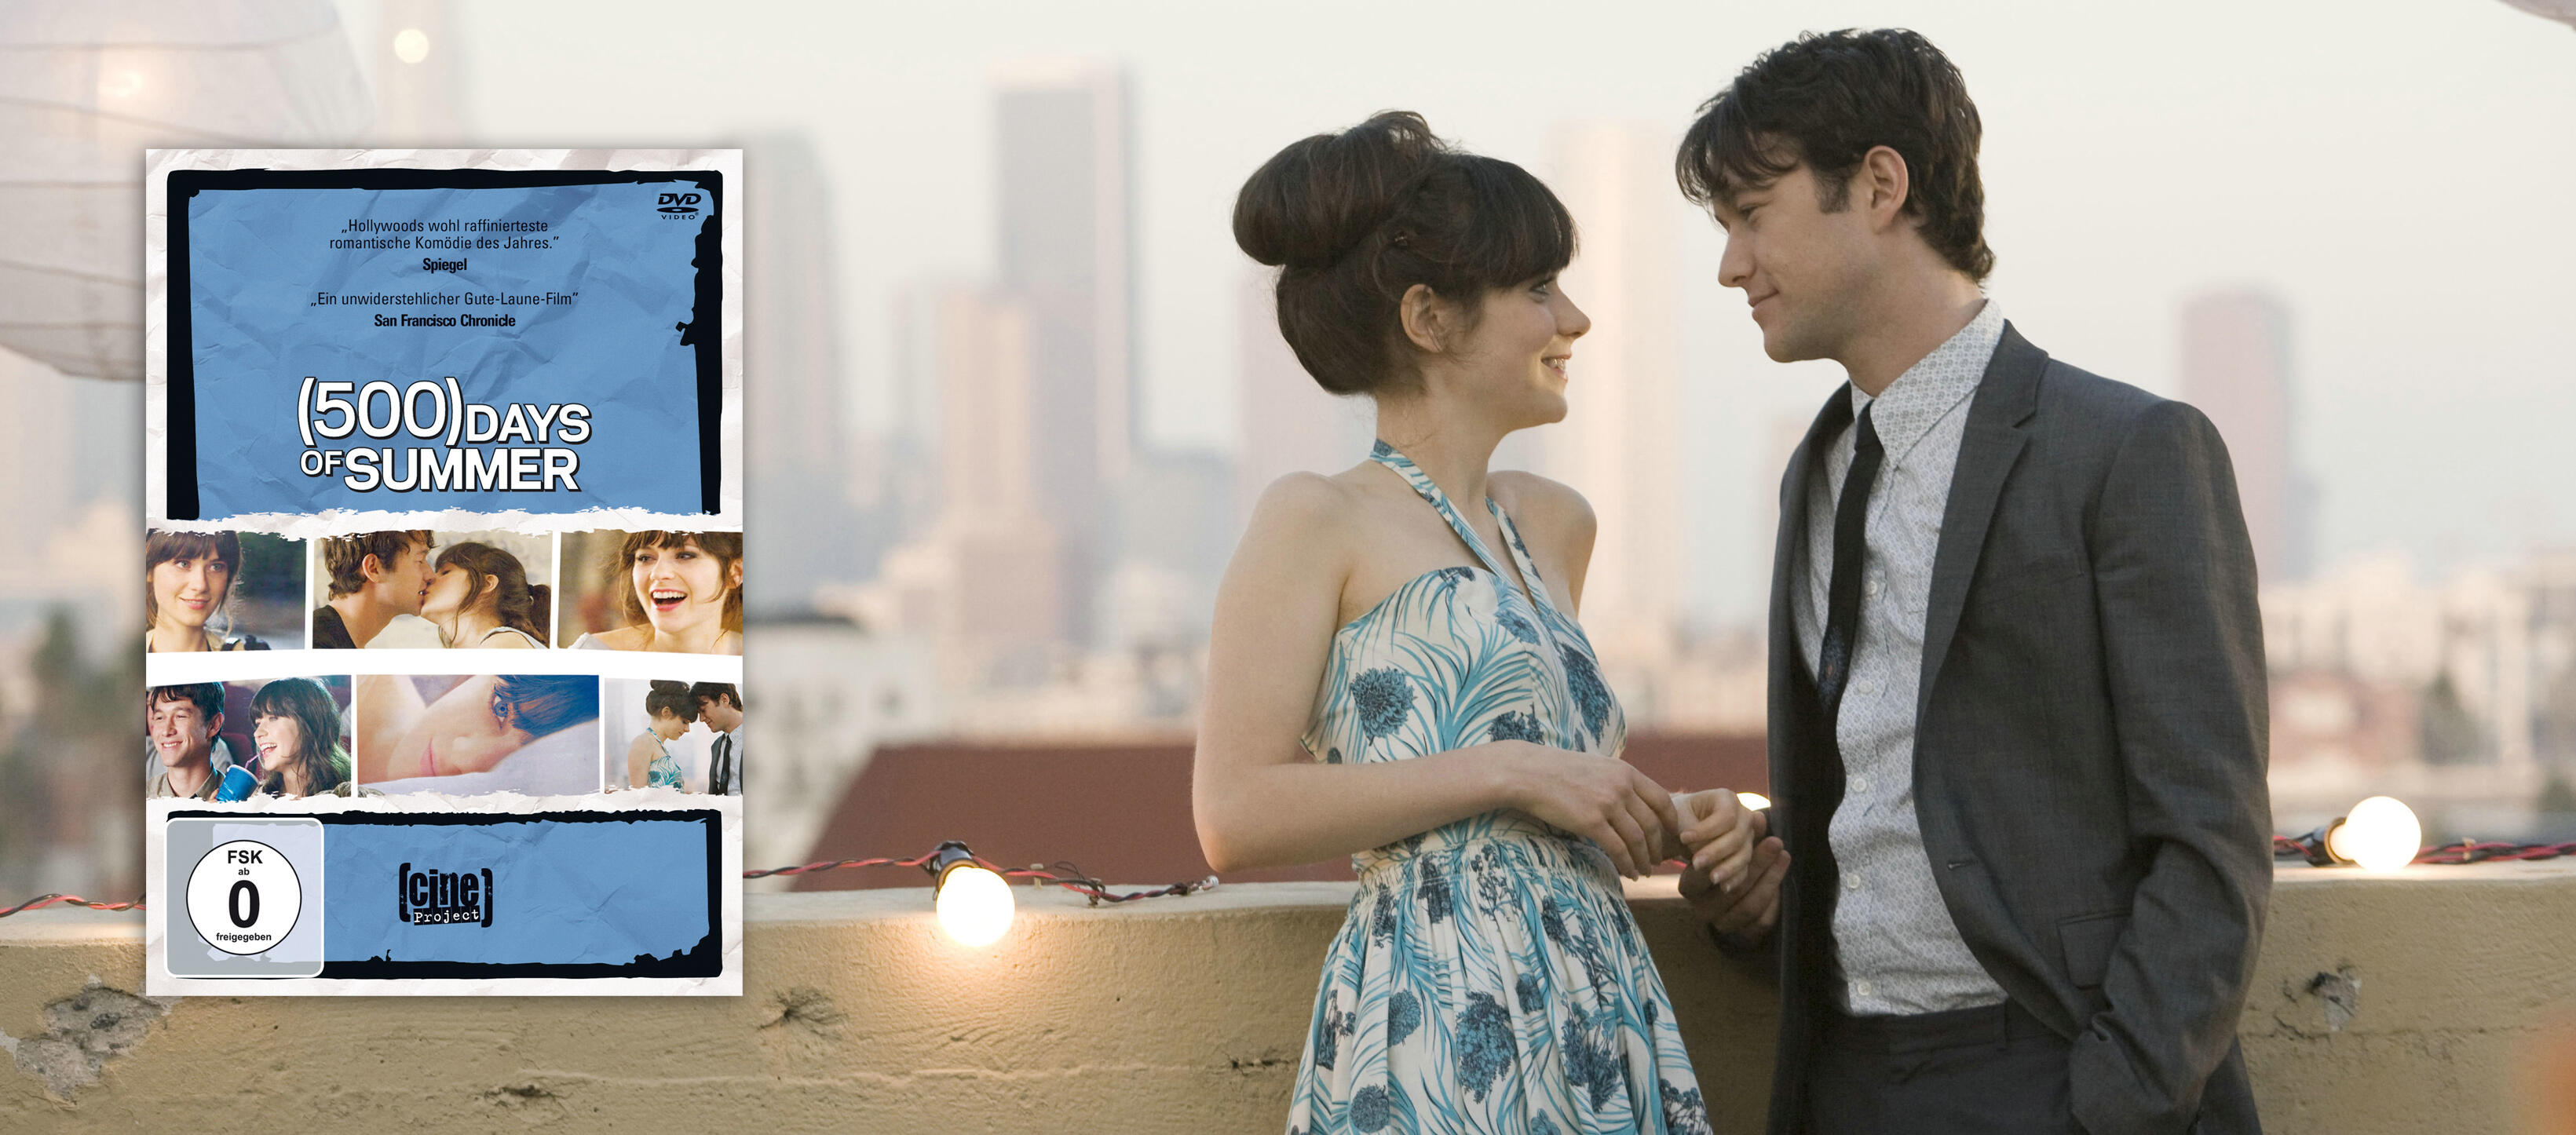 an analysis of the film 500 days of summer Almost sinister prettiness zooey deschanel with joseph gordon-levitt in (500) days of summer the glassy-eyed, almost sinister prettiness of zooey deschanel colours the spacey, detached mood of.